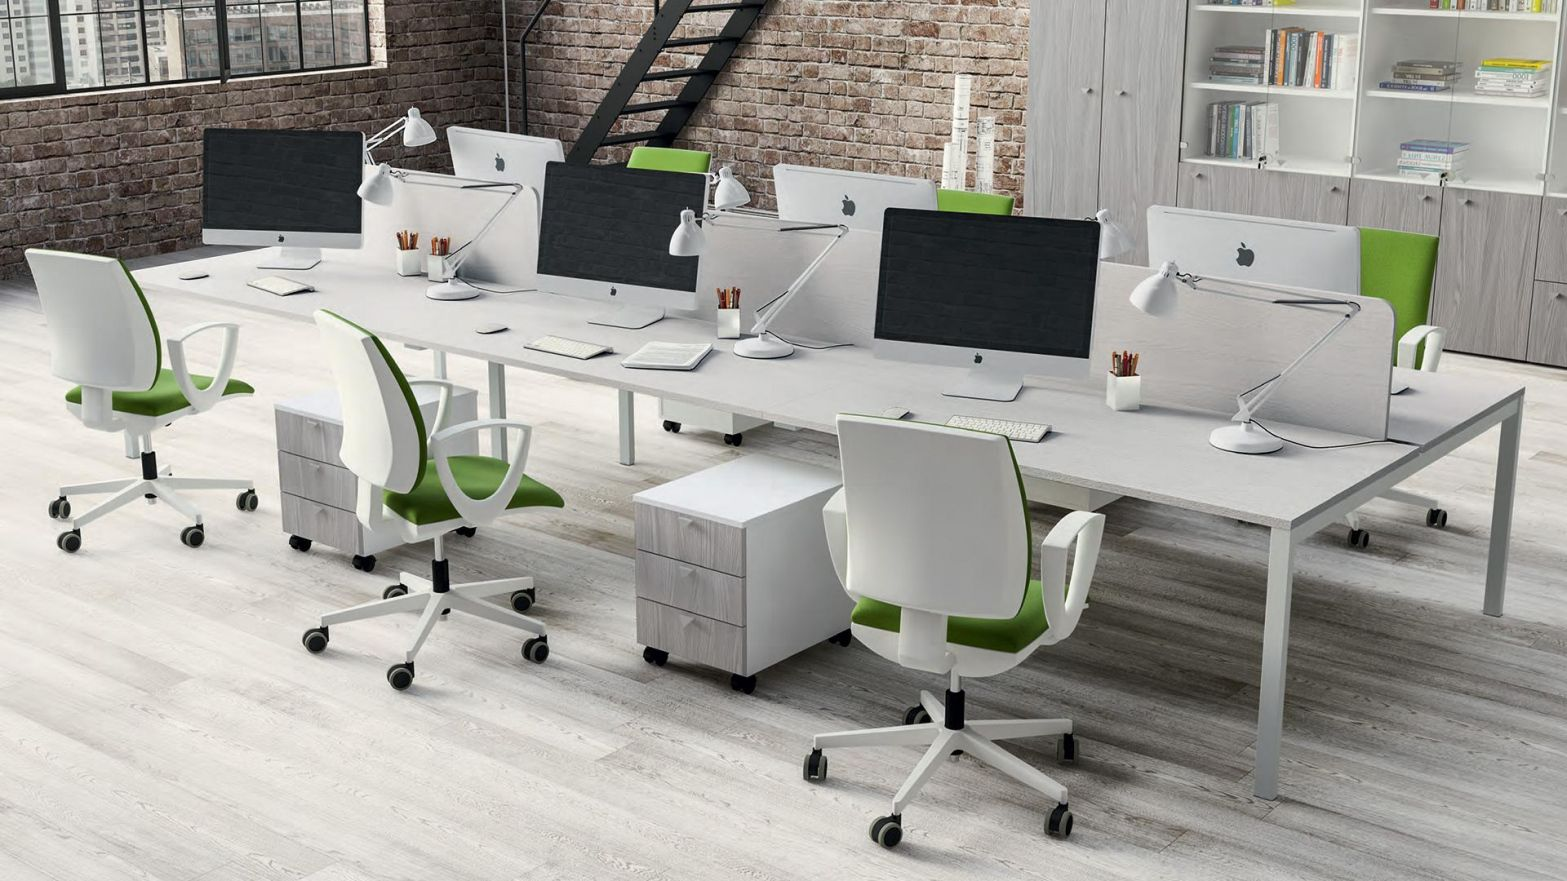 99 Office Furniture To Buy Large Home Office Furniture Check More At Http Adidasjrca Office Furniture Design Elegant Office Furniture Office Desk For Sale